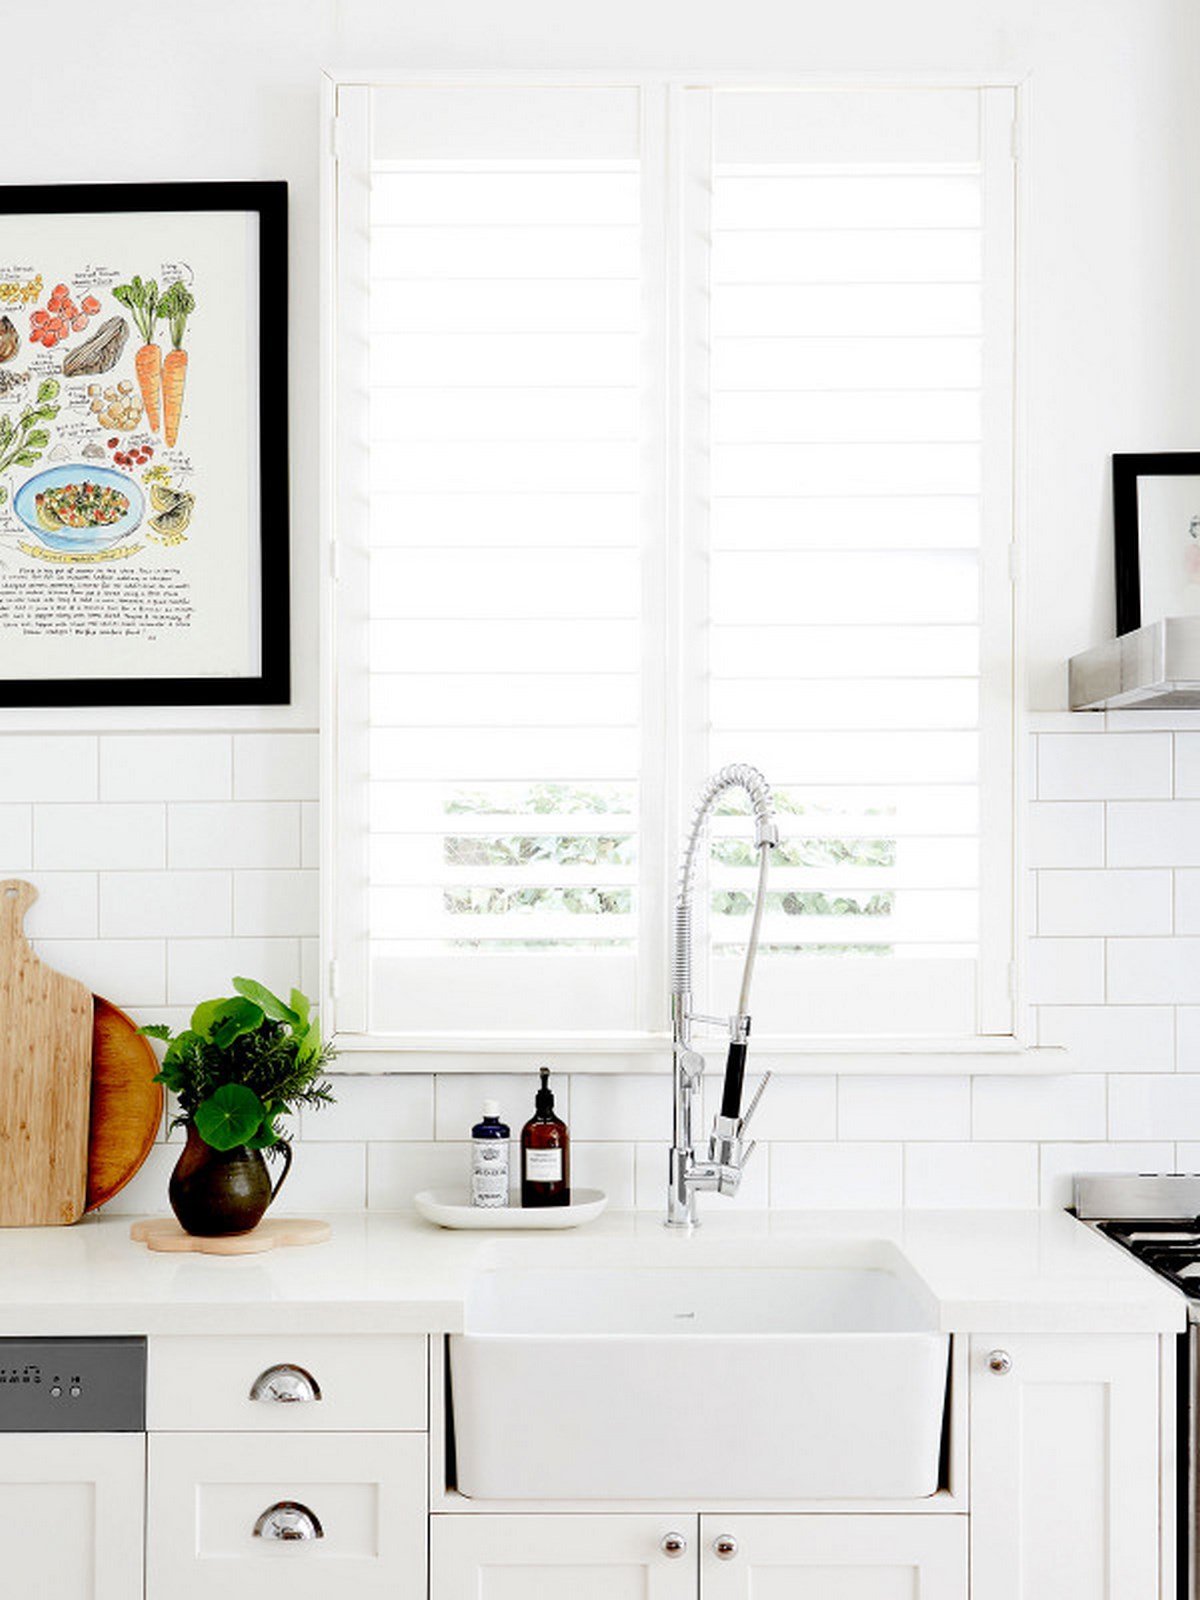 2-white-kitchen-with-pull-down-stainless-faucet-with-white-big-washbasin-and-indoow-plant